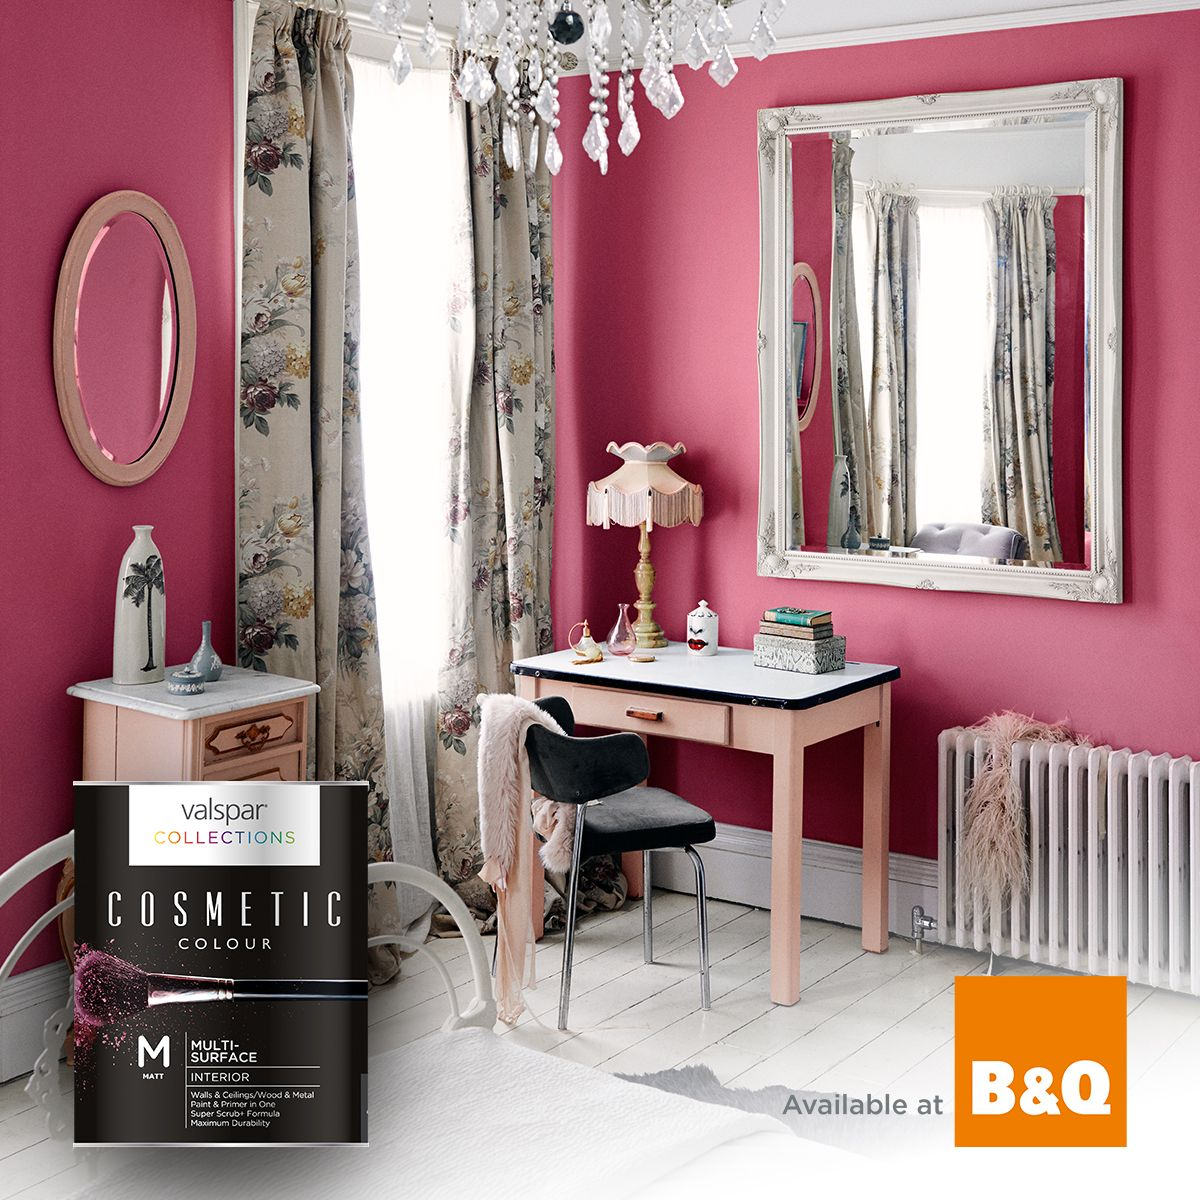 Inspired by the world of beauty, Cosmetic Colour from